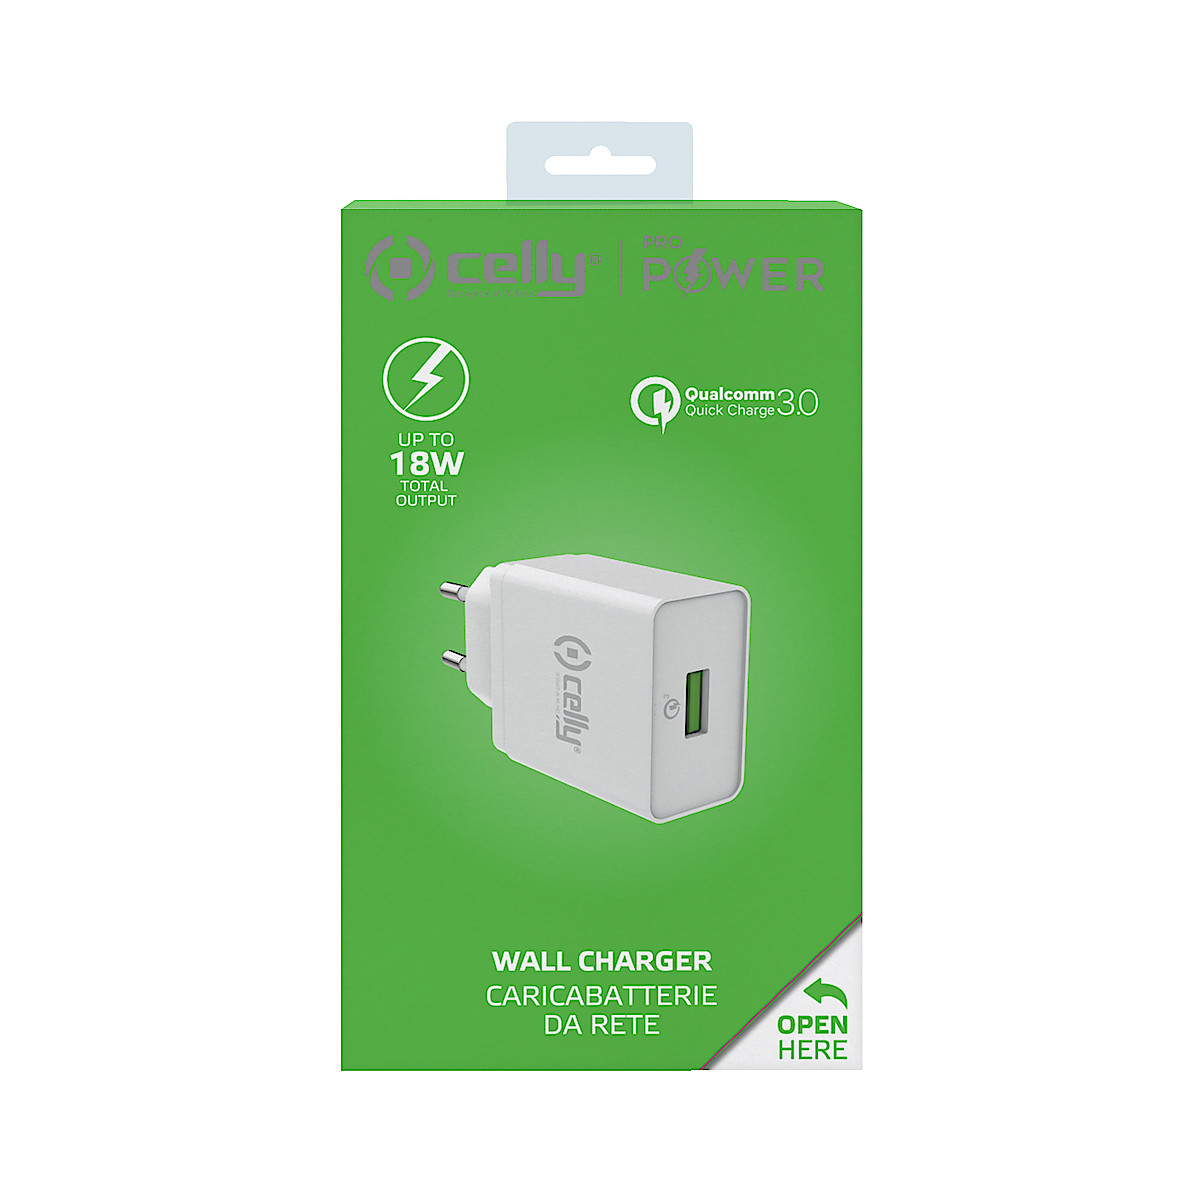 USB-laturi, Celly Quick Charge 3.0